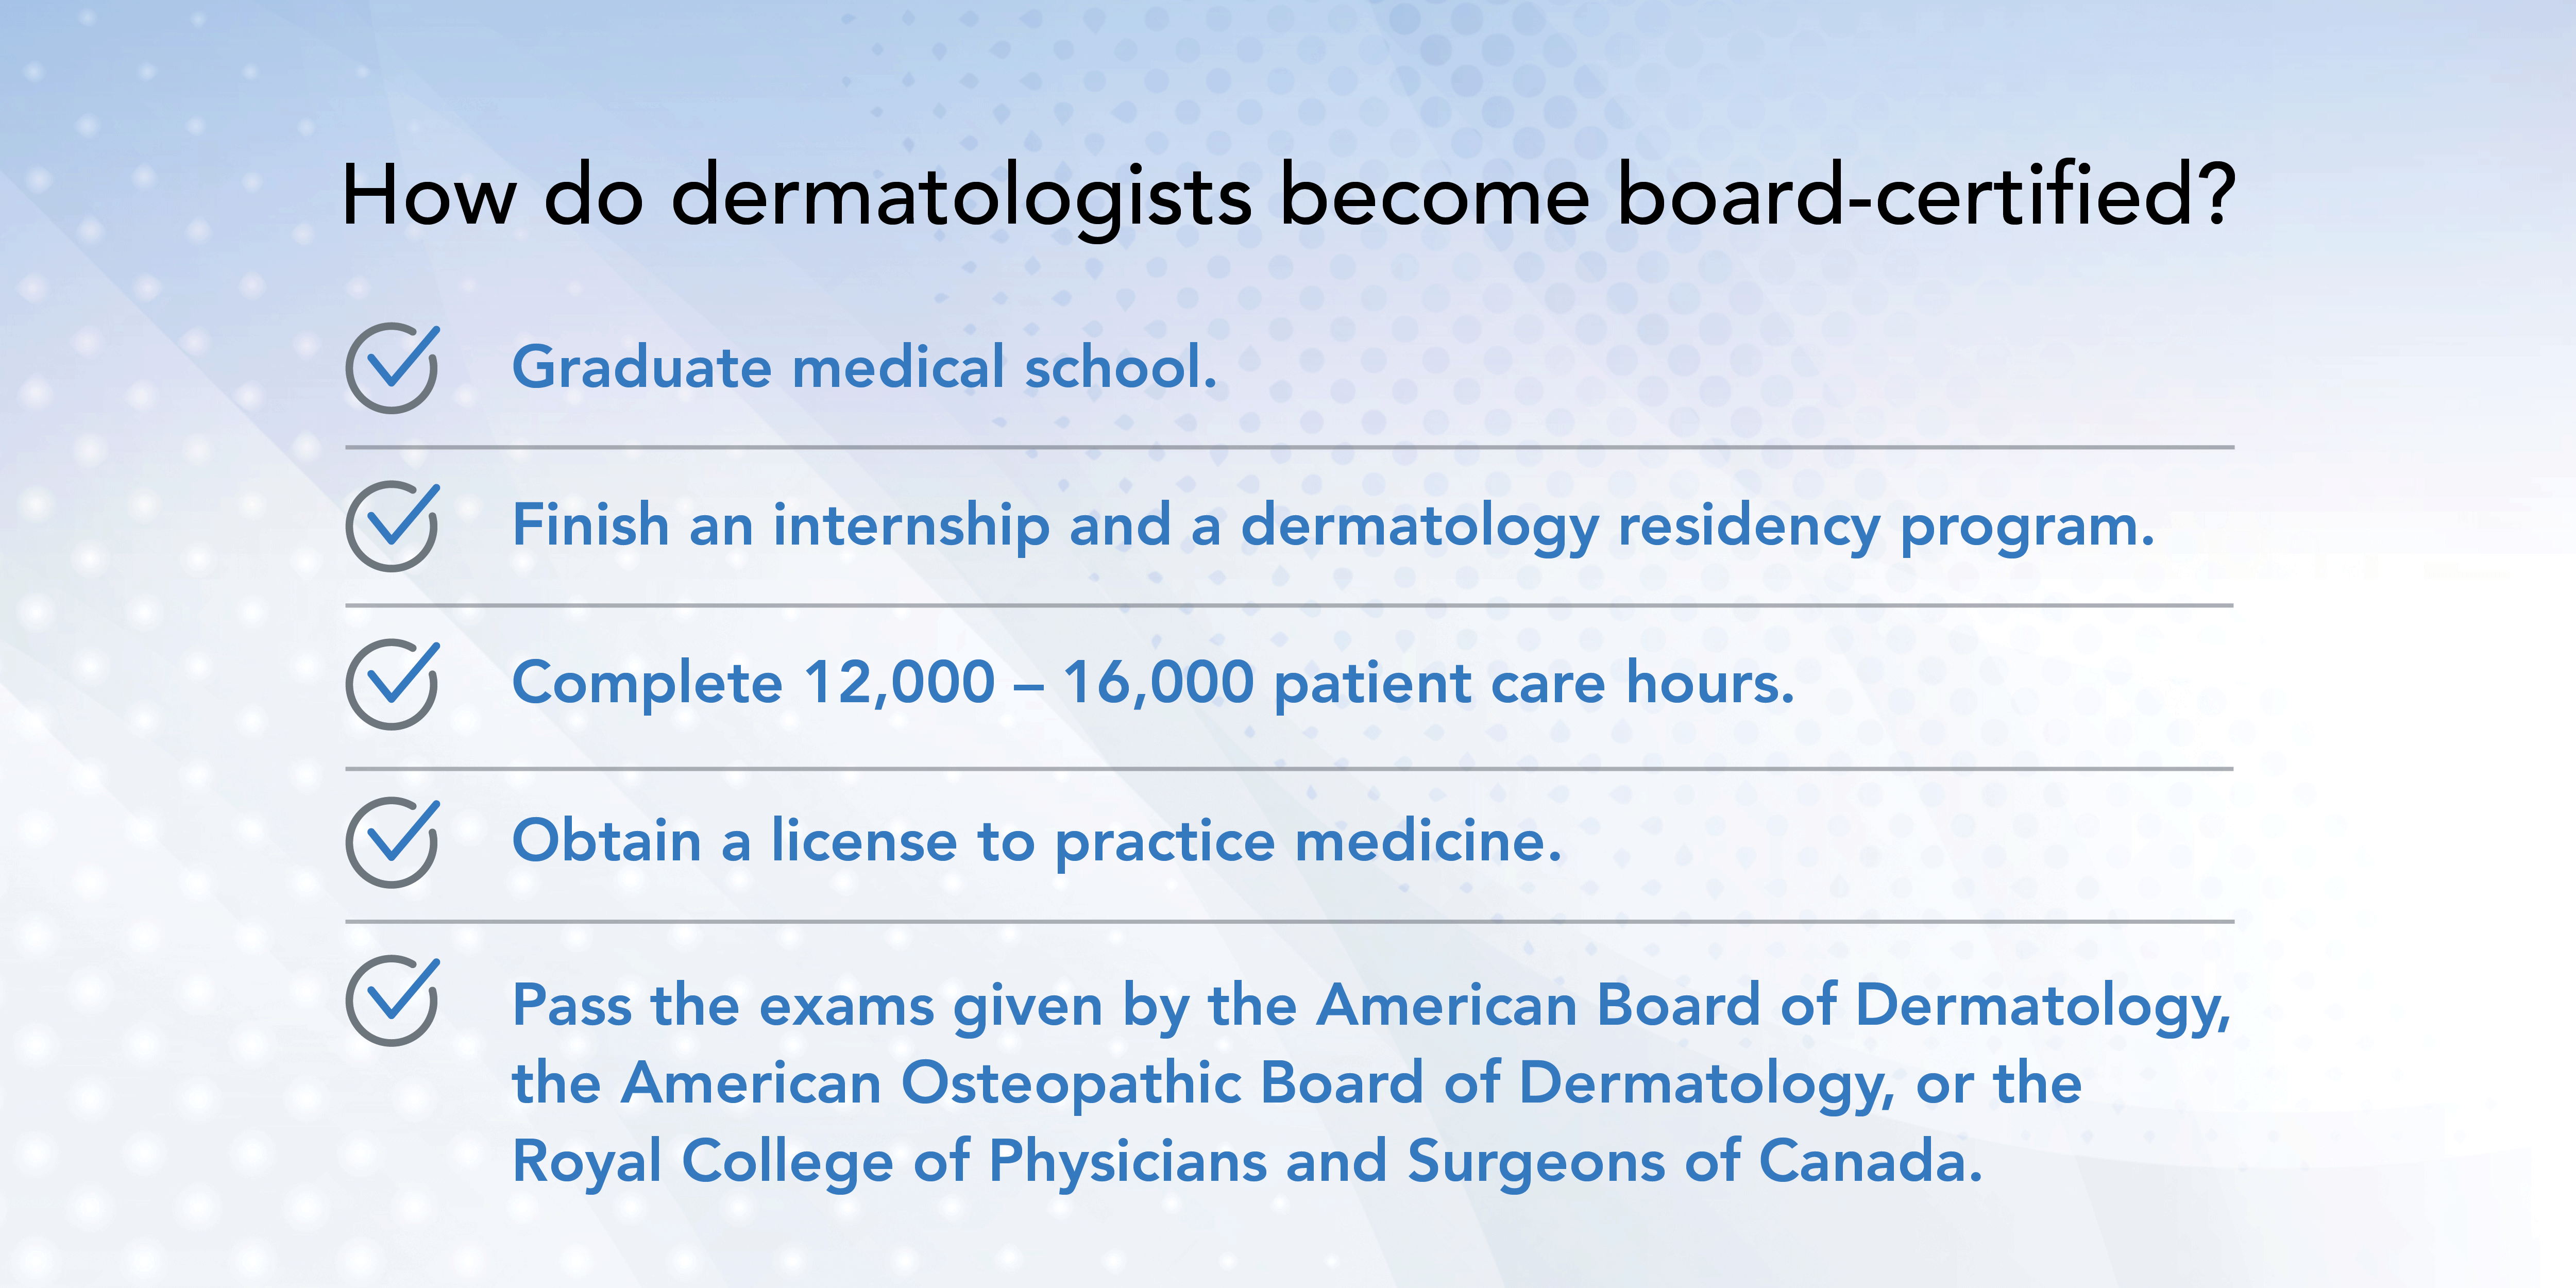 How dermatologists become board-certified infographic.